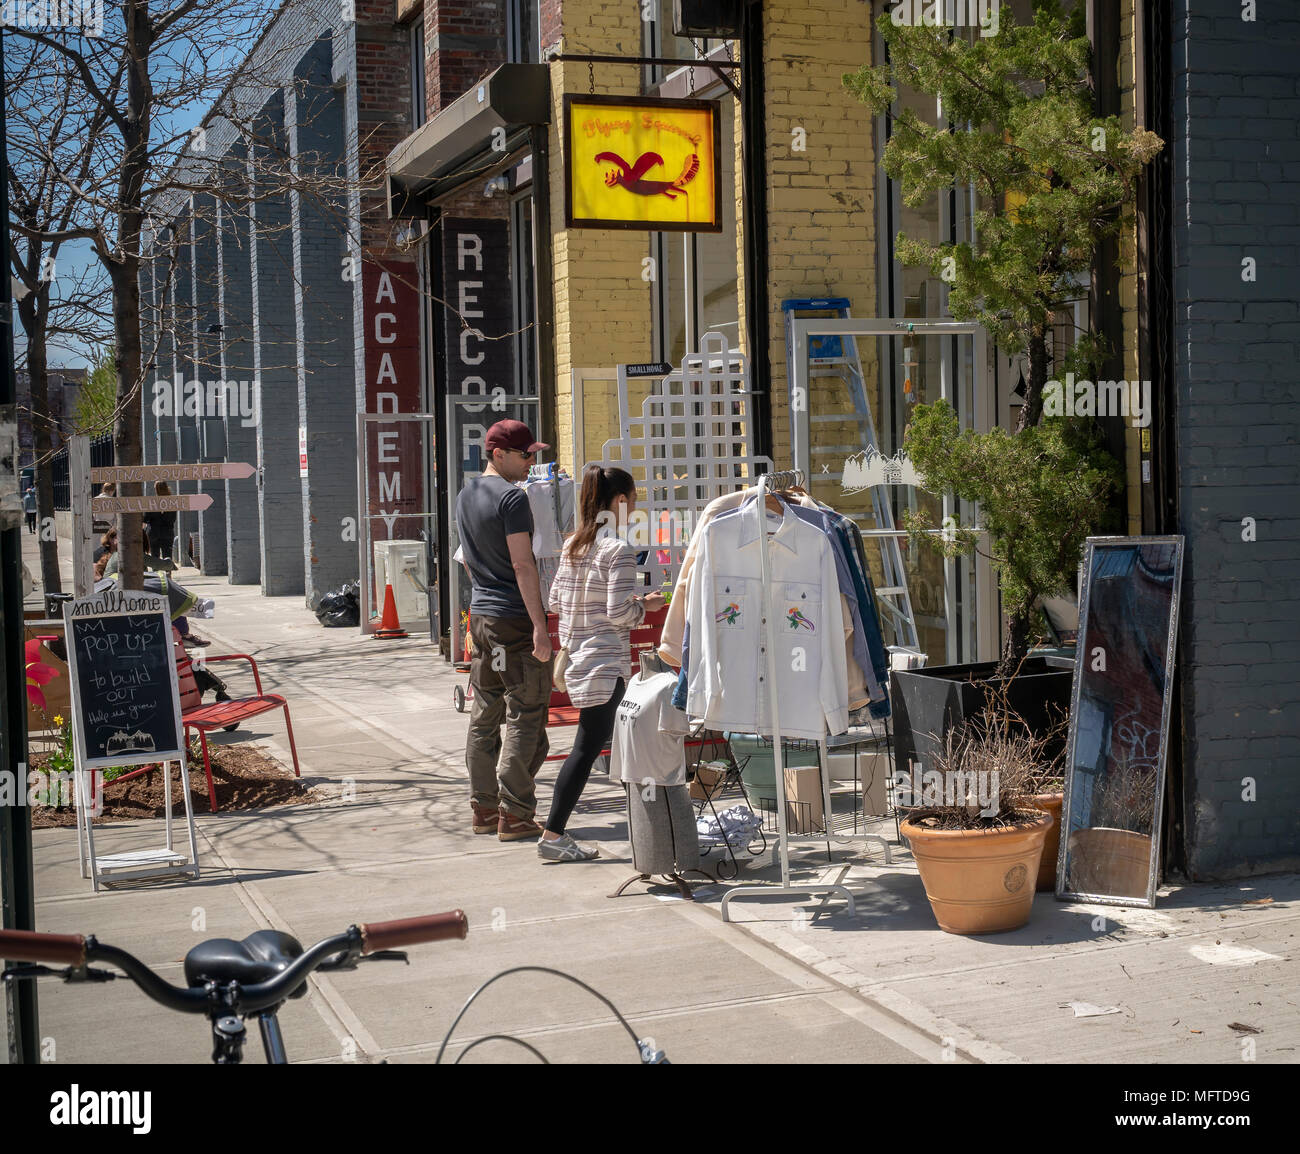 Shopping in the Greenpoint neighborhood of Brooklyn on Sunday, April 22, 2018.   Zoning changes in 2005 promoted residential development in areas previously designated industrial.(© Richard B. Levine) - Stock Image